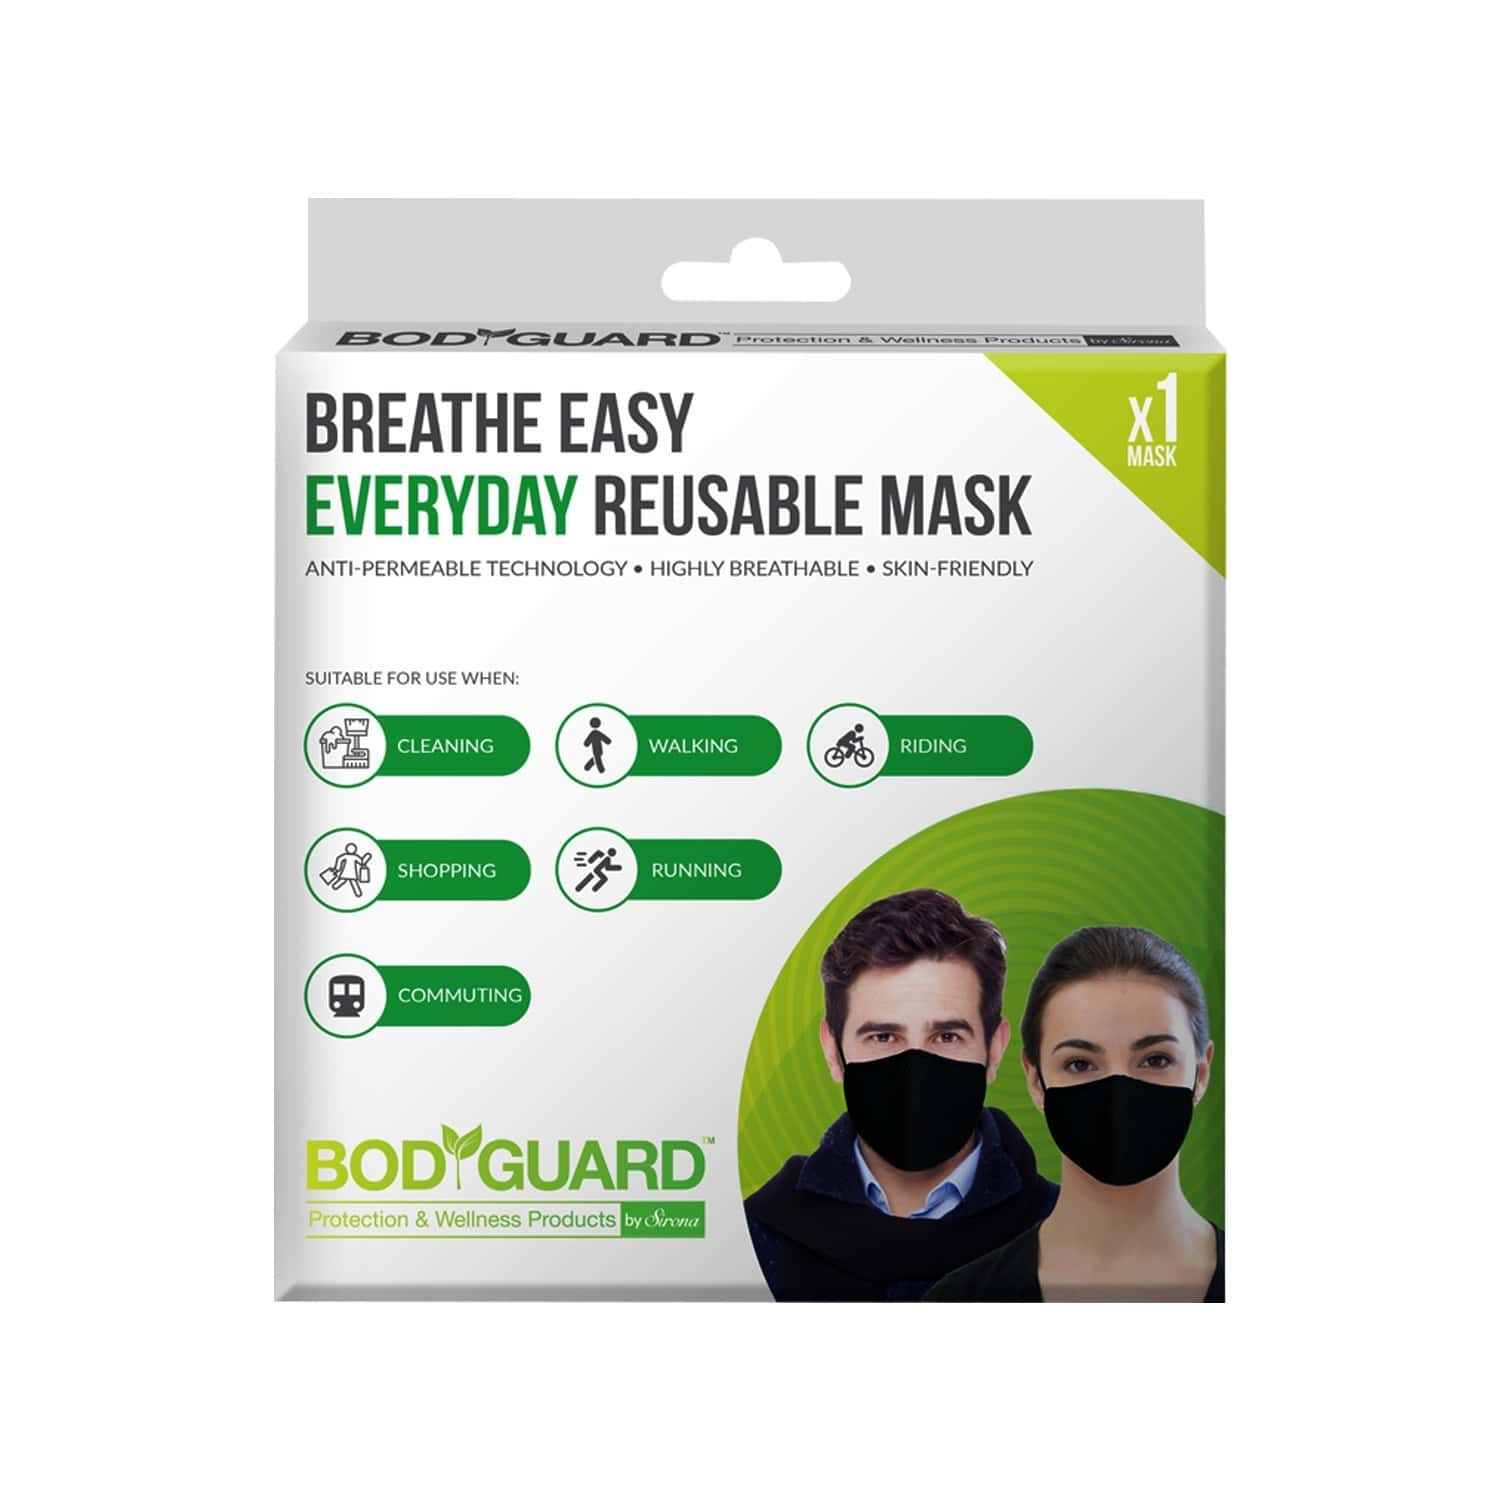 Bodyguard Breathe Easy Everyday Reusable Anti Pollution Mask - 1 Unit